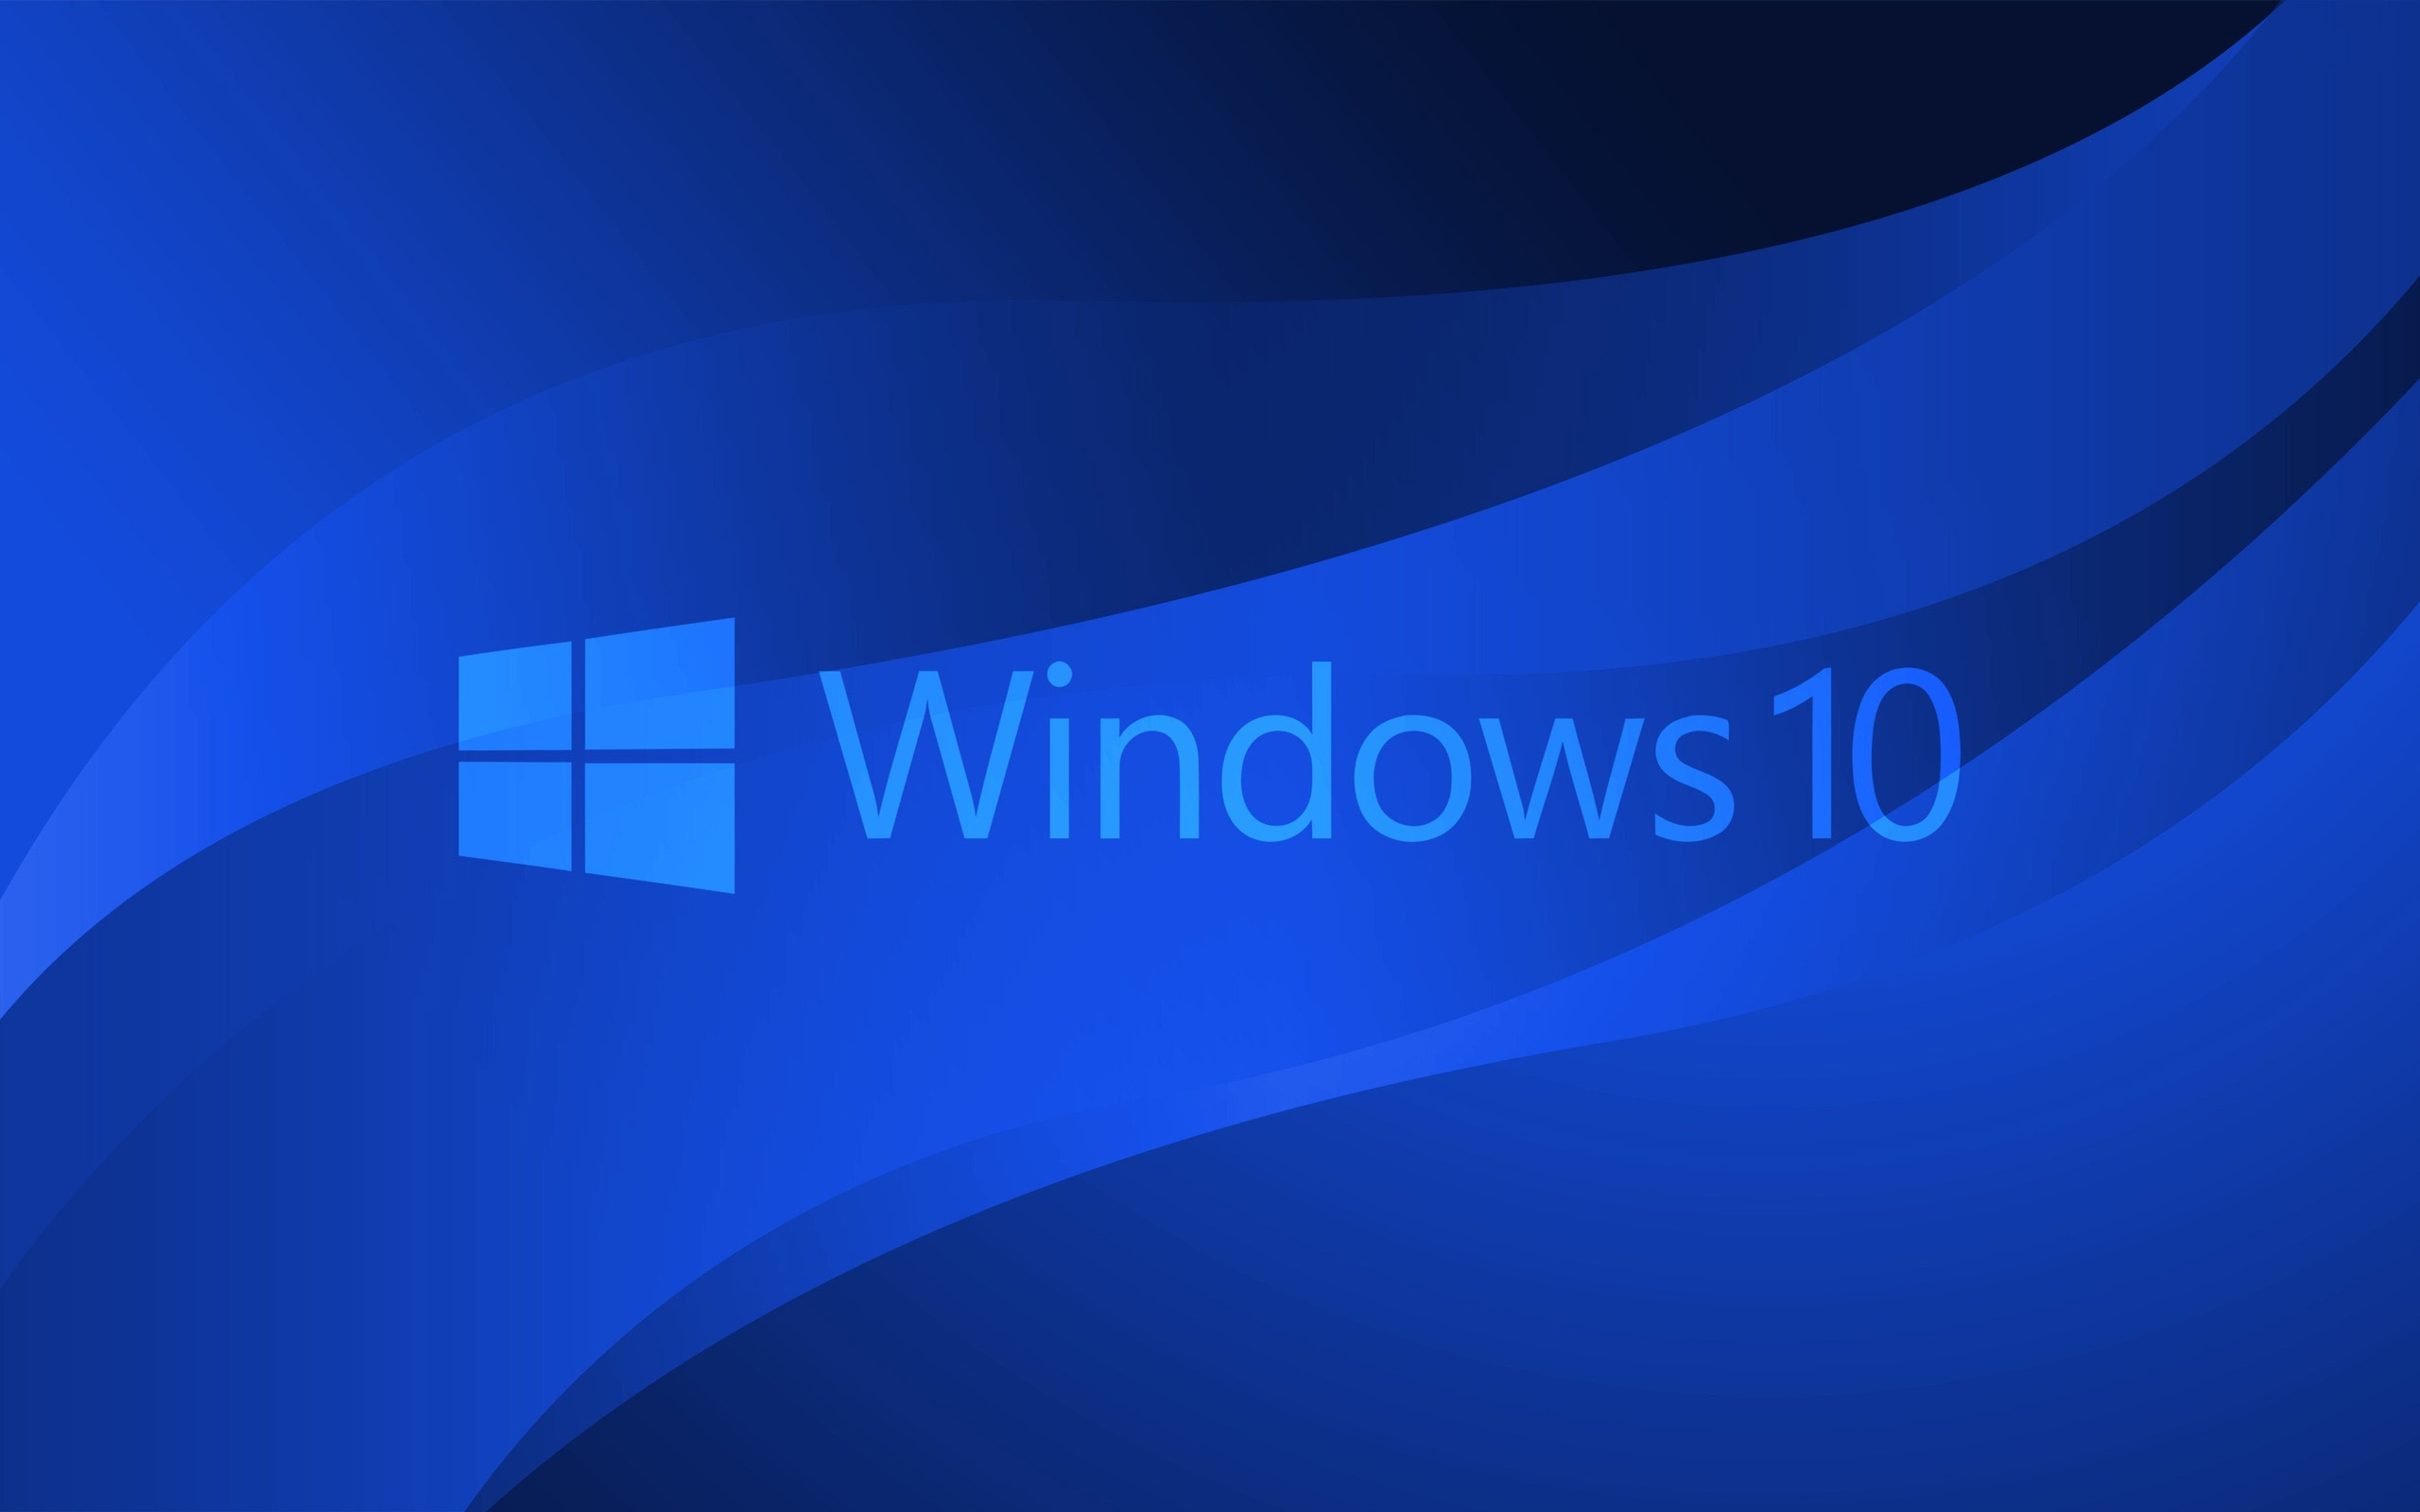 Windows 10 Hd Theme Desktop Wallpaper 18 Preview 10wallpaper Com